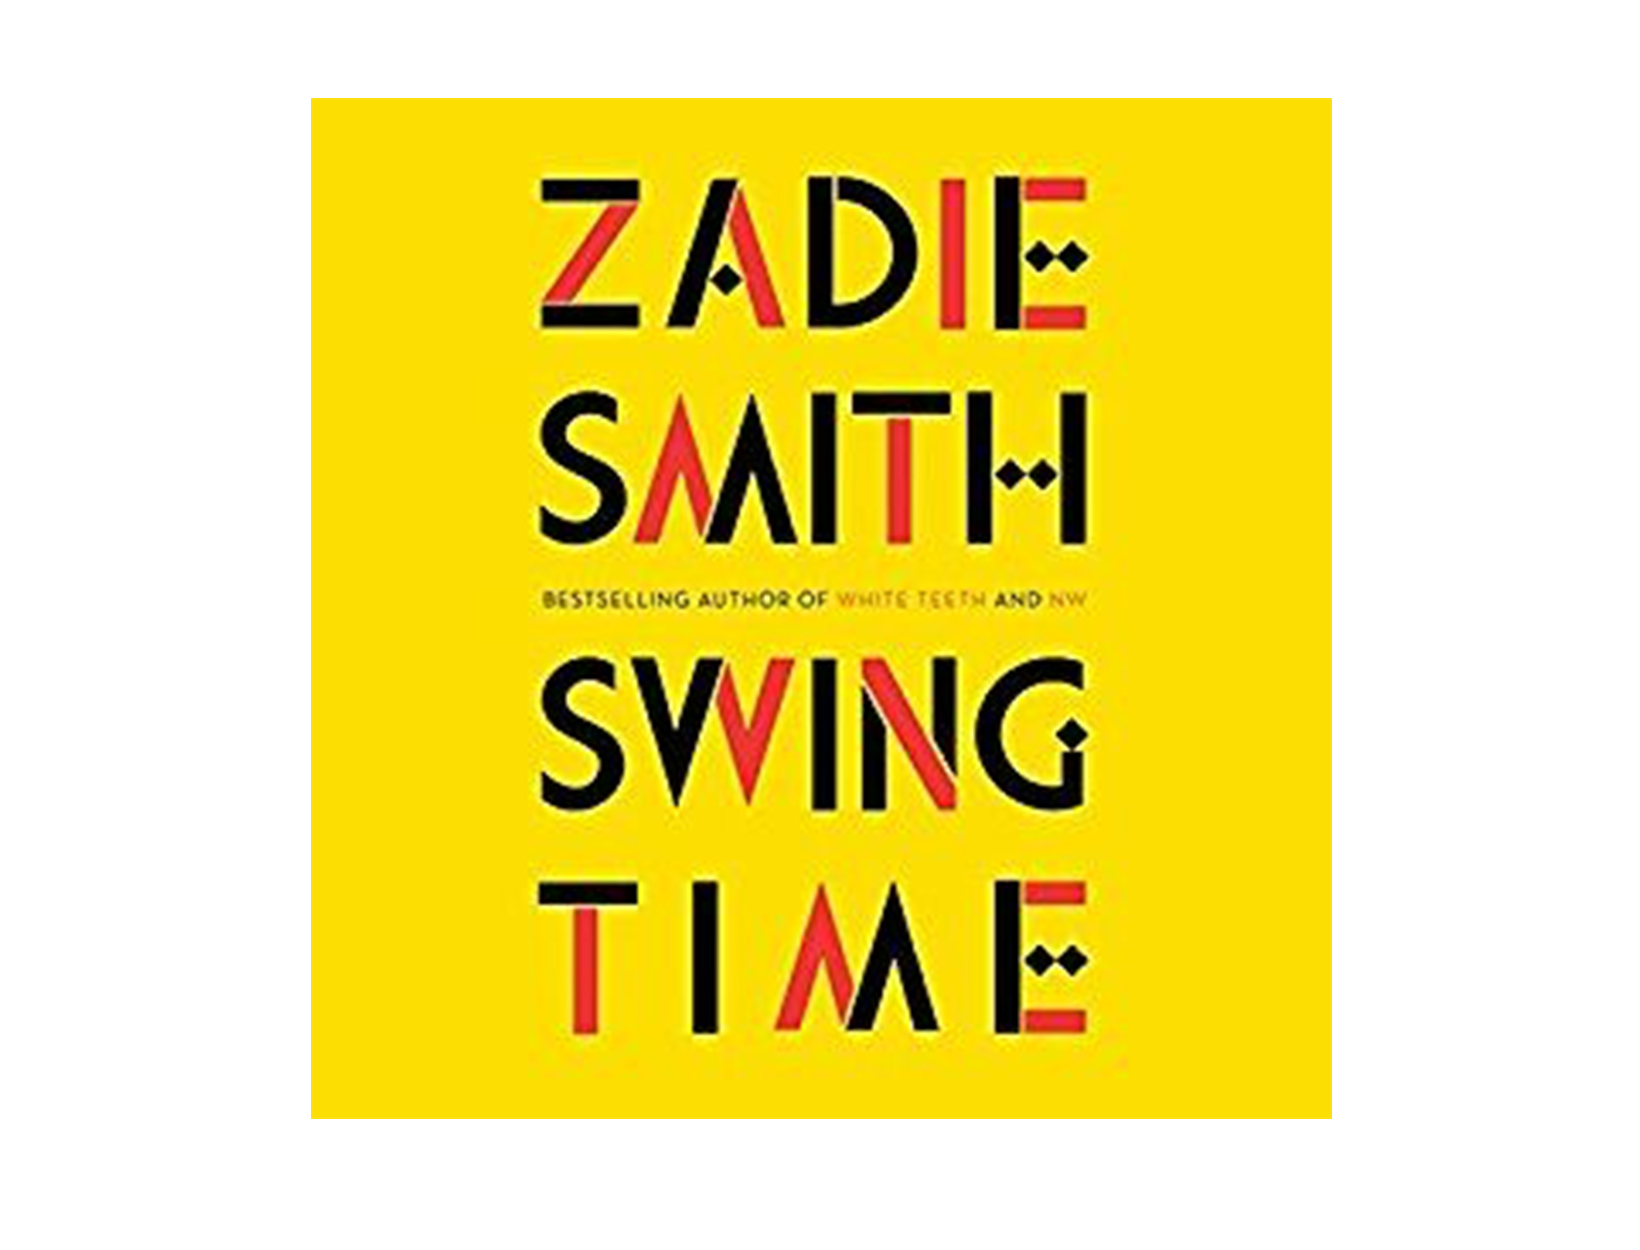 Swing Time by Zadie Smith, read by Pippa Bennett-Warner